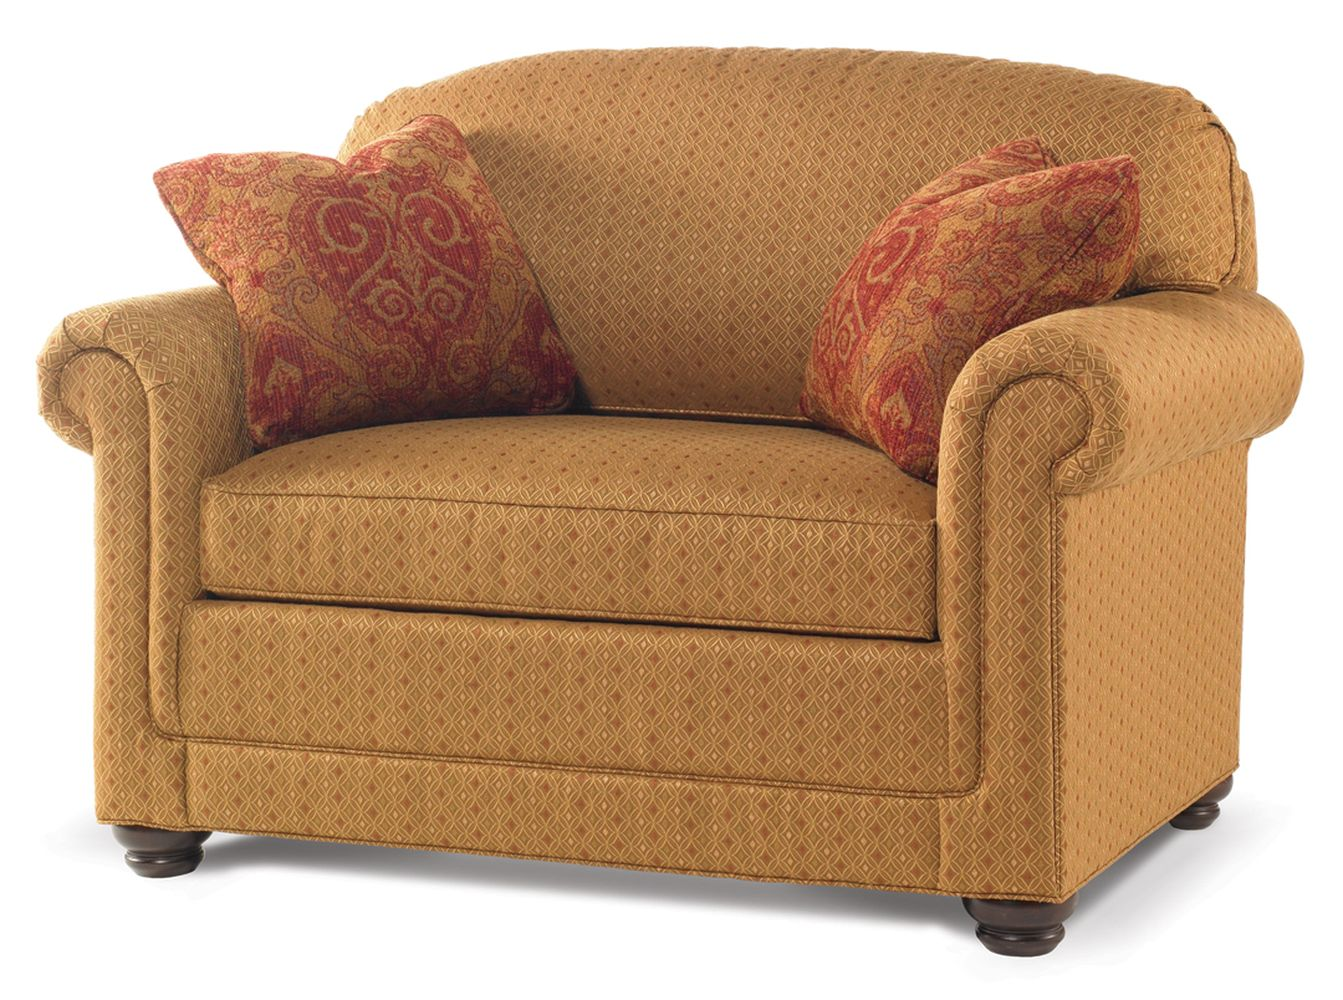 Image of: Twin Sleeper Chair And a Half Colors